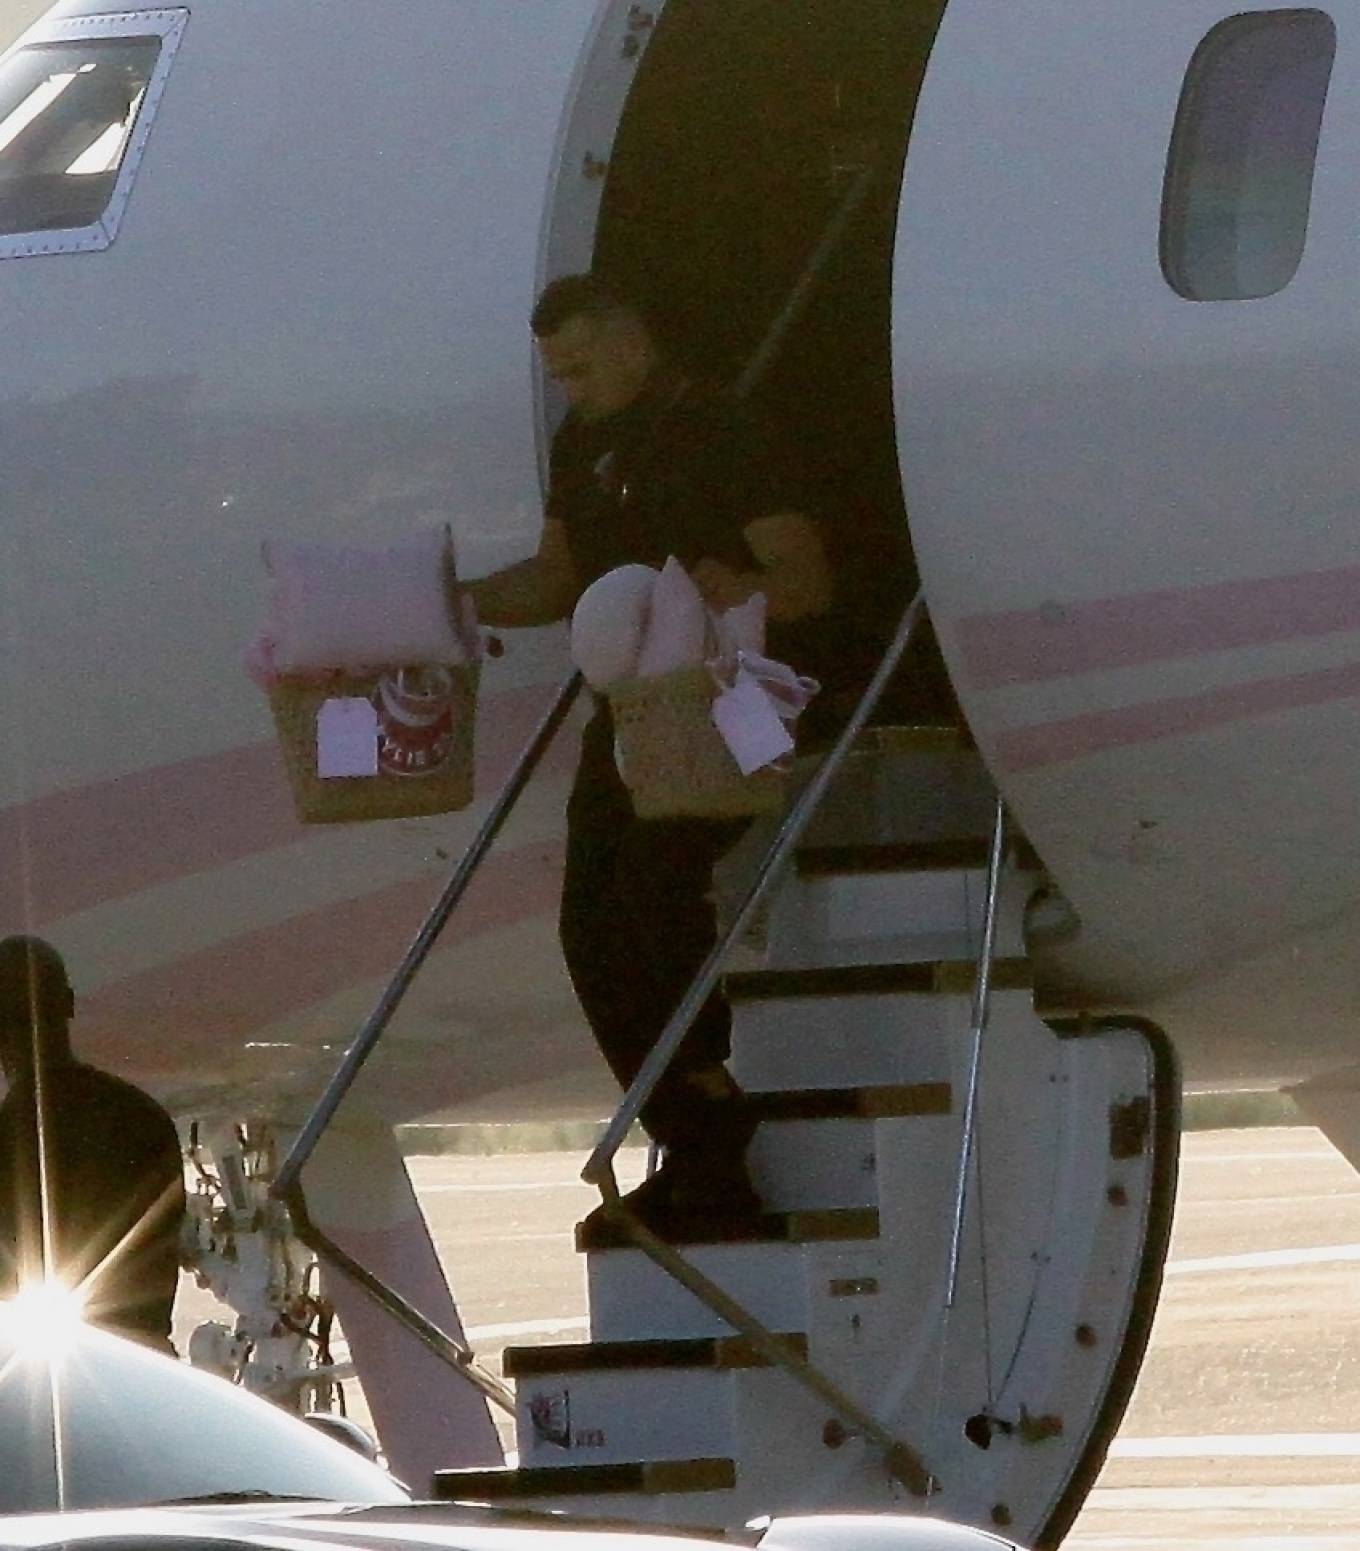 Khloe Kardashian 2020 : Khloe Kardashian and Kourtney Kardashian – Pictured boarding Kylie Jenners private jet in Van Nuys-06